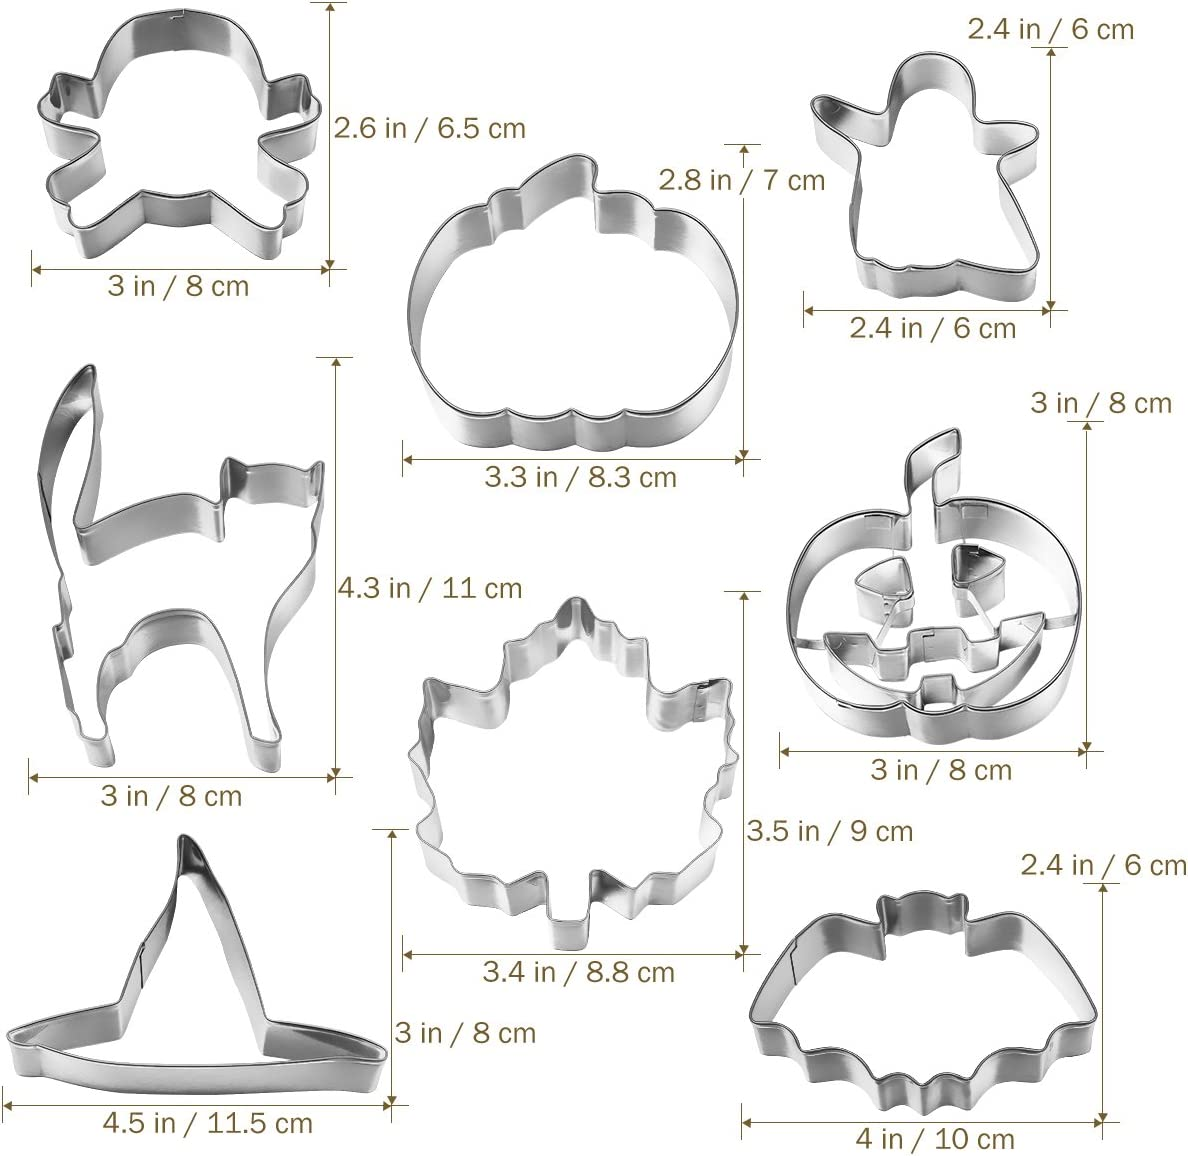 Halloween Cookie Cutters Halloween Cookie Cutter Set Biscuit Moulds Fondant Icing Mold DIY Baking Tools 8pcs